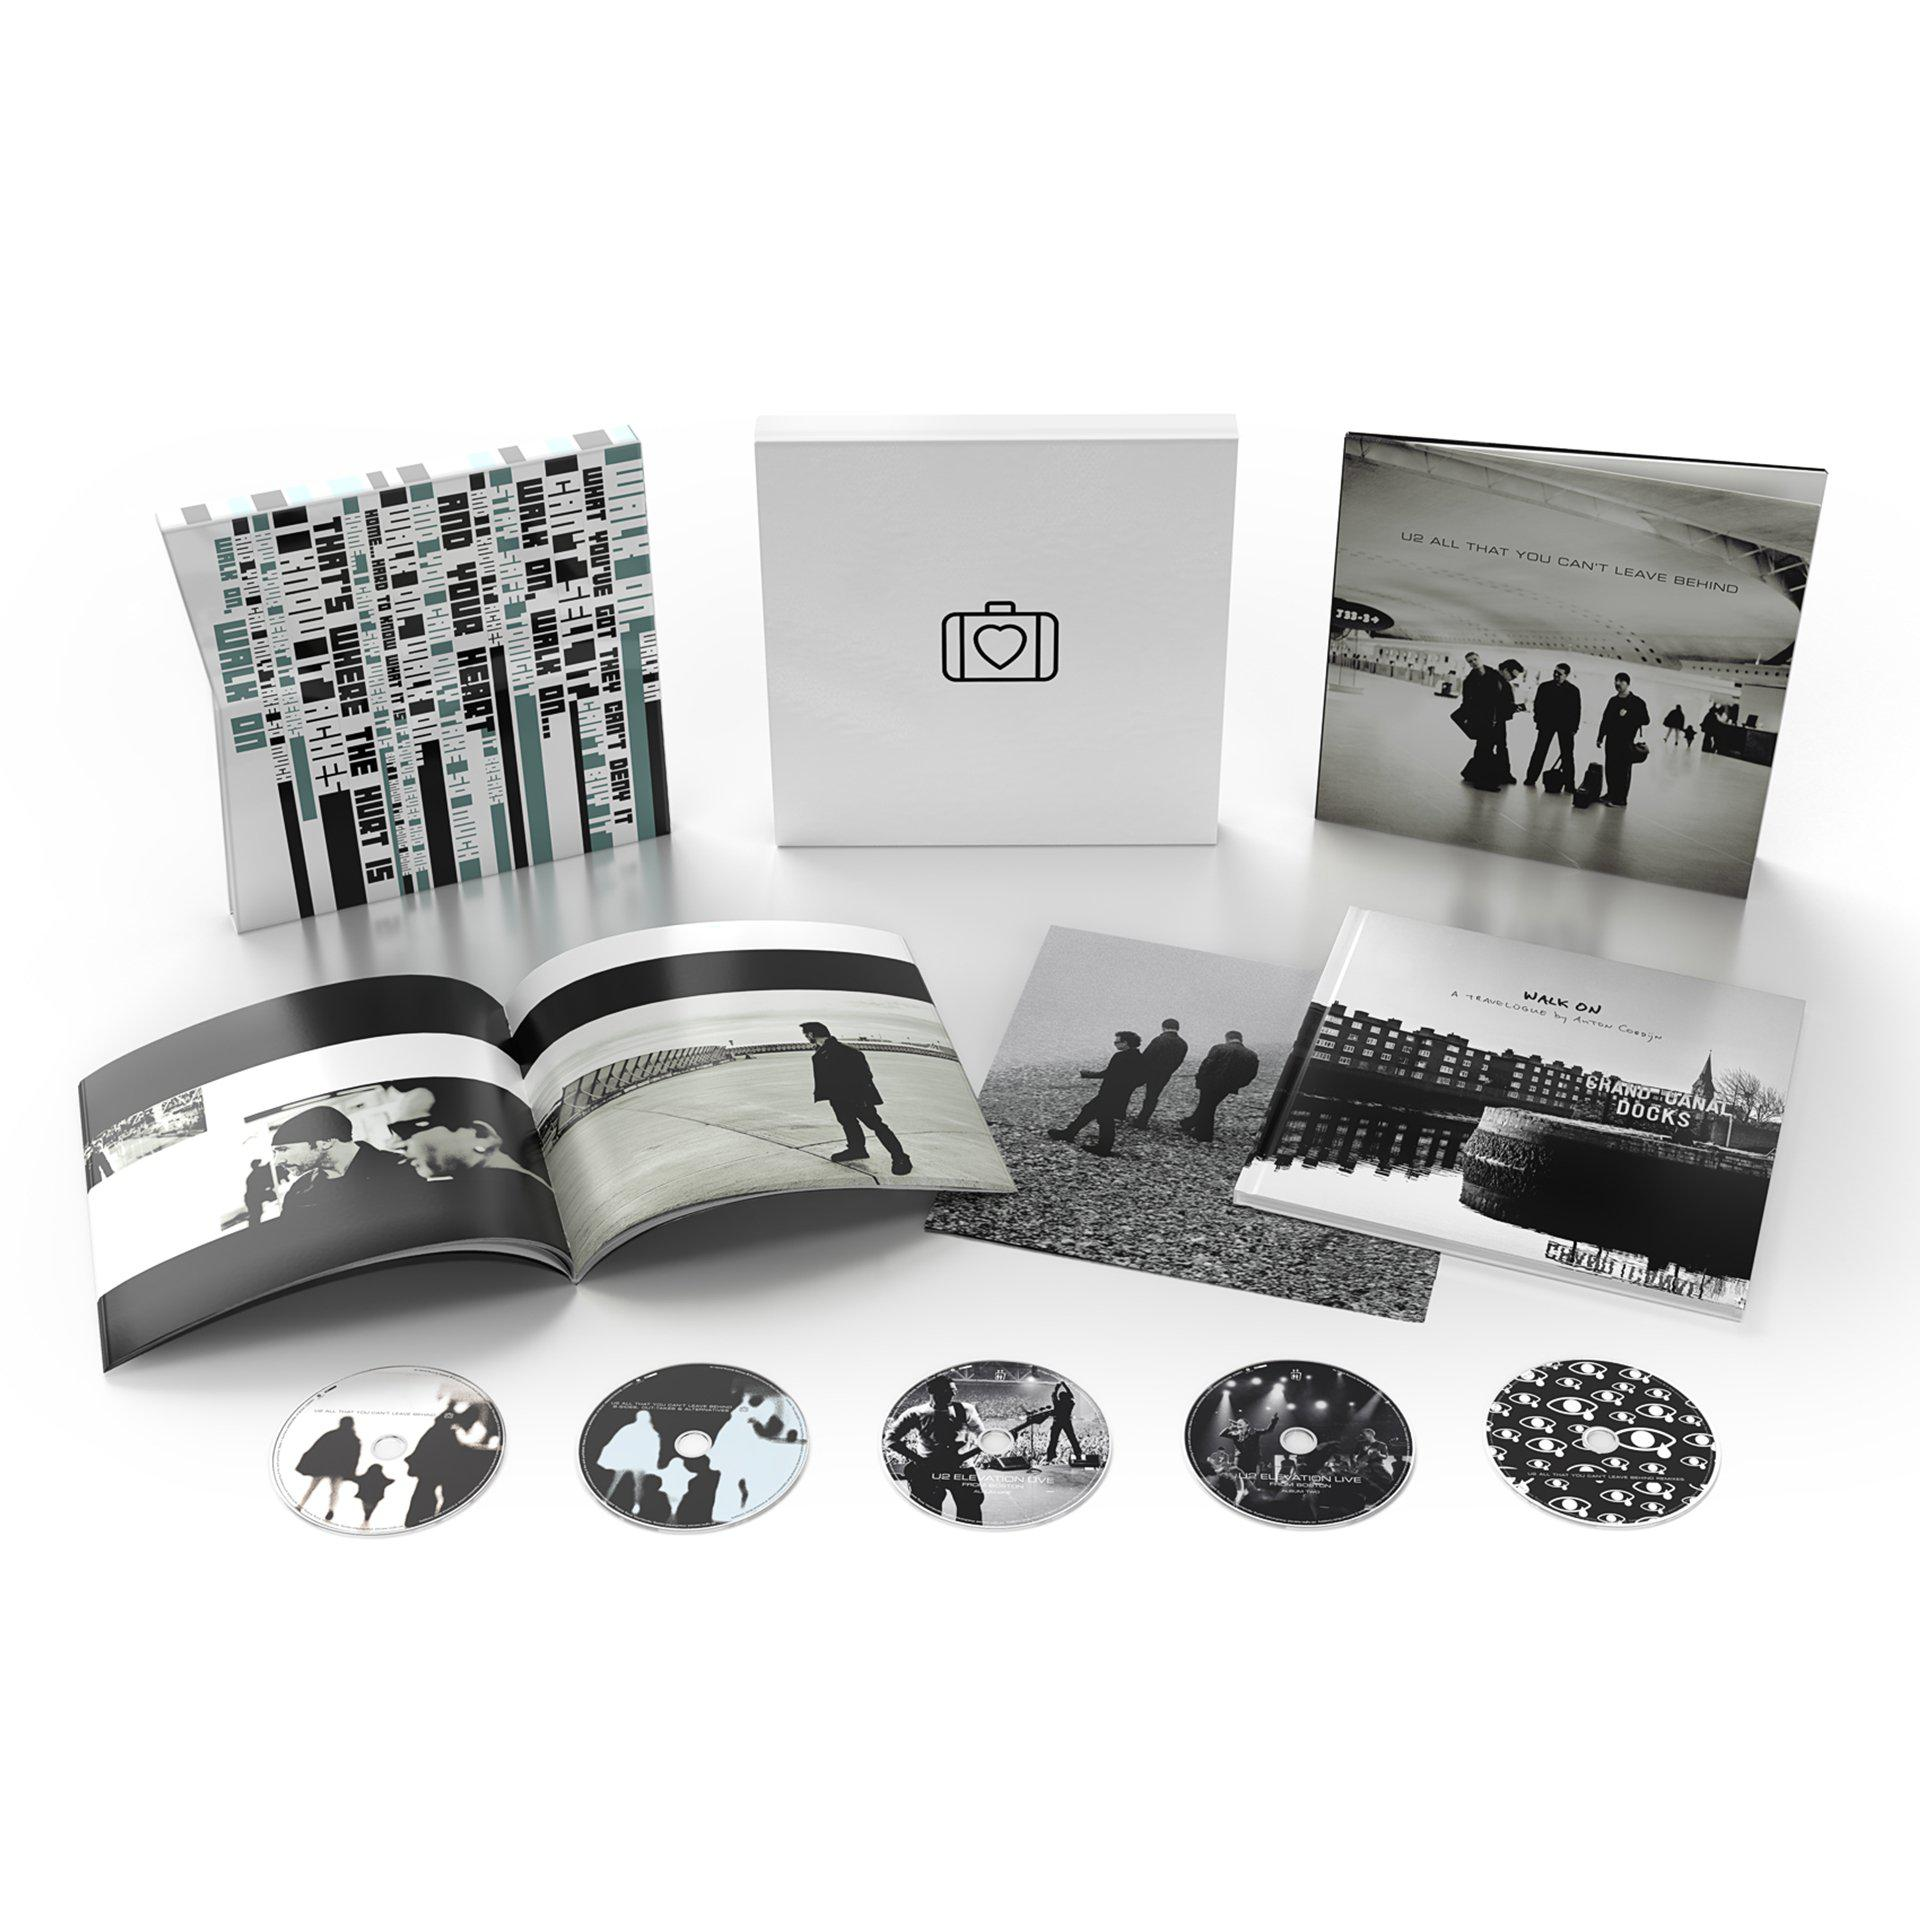 All That You Can't Leave Behind (20th Anniversary) Deluxe CD Boxset-U2